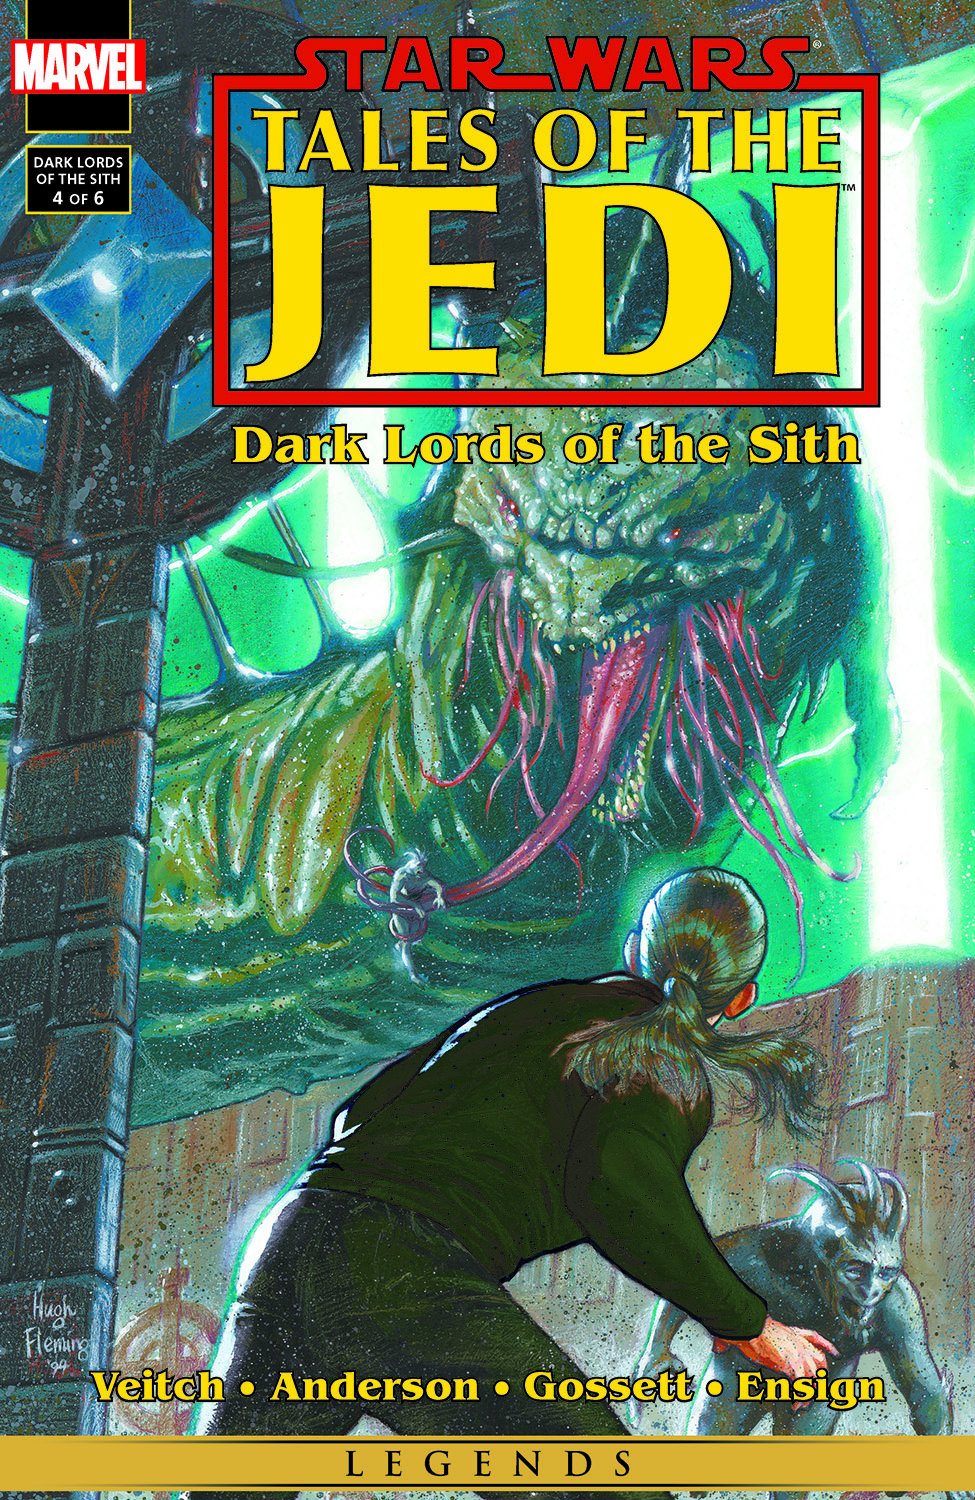 Star Wars: Tales of the Jedi - Dark Lords of the Sith (1994) #4